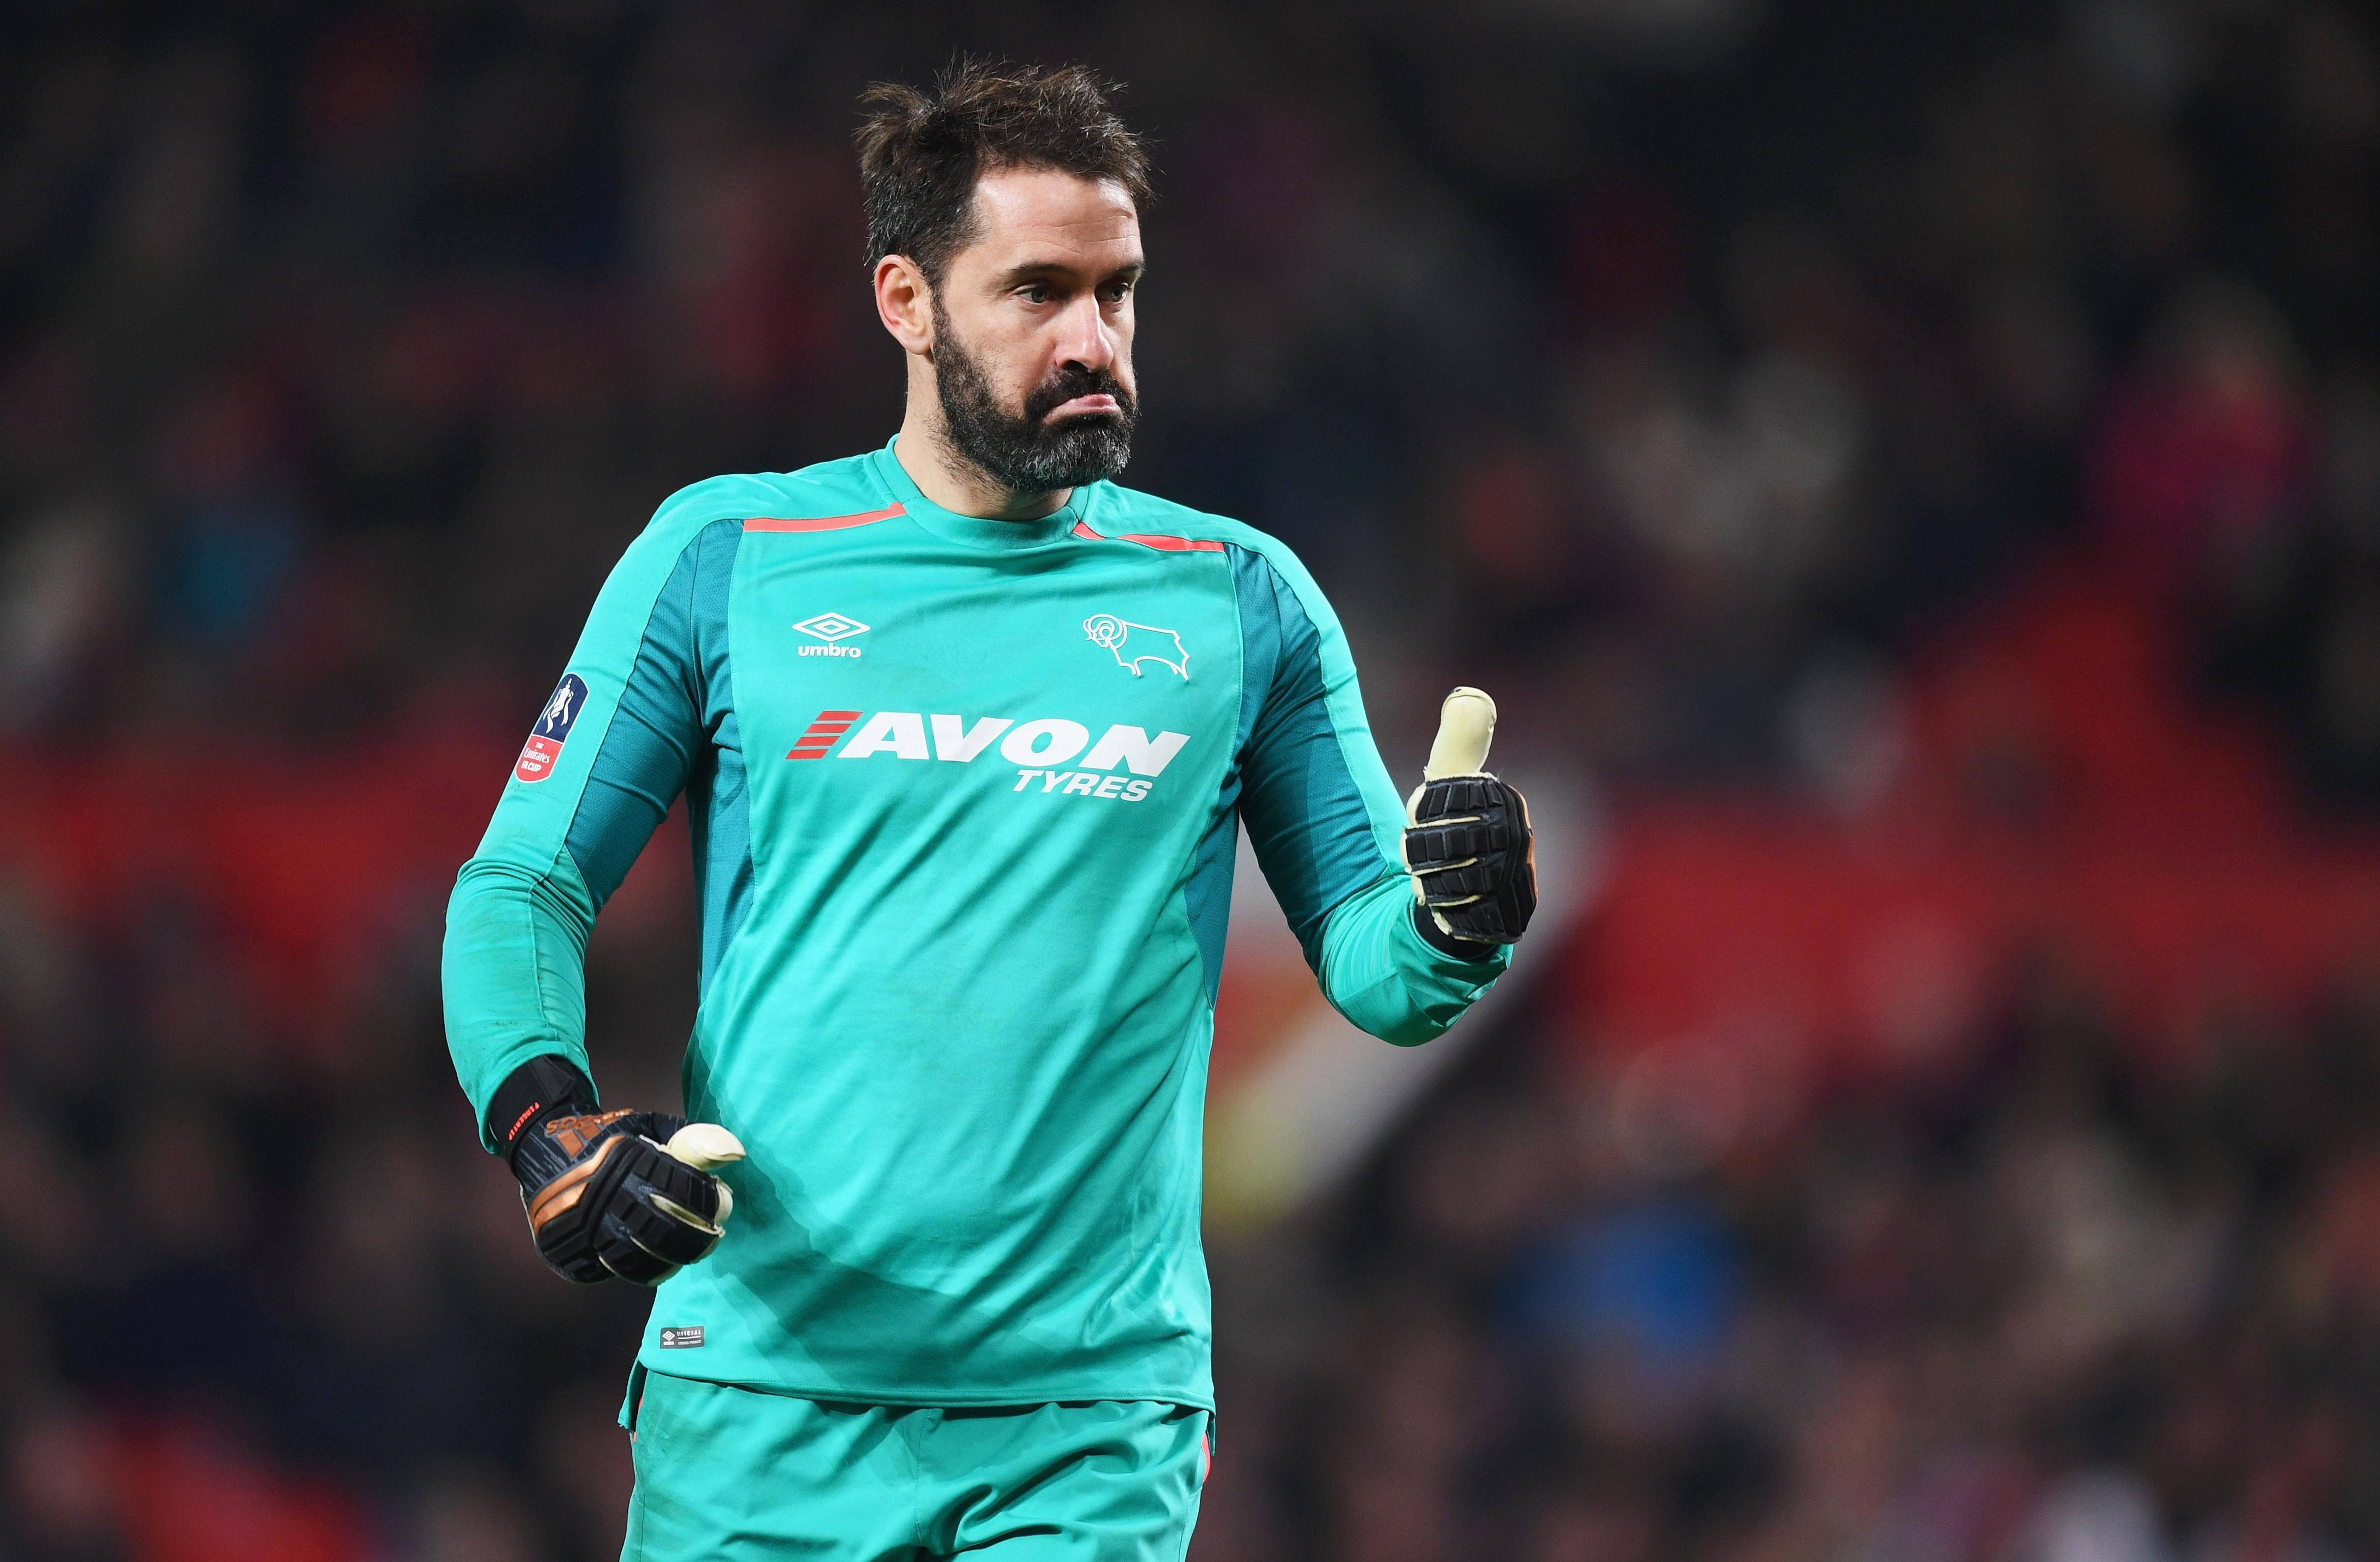 You'd have laughed at the suggestion of a Scott Carson England recall ten years ago – but now the calls are growing louder